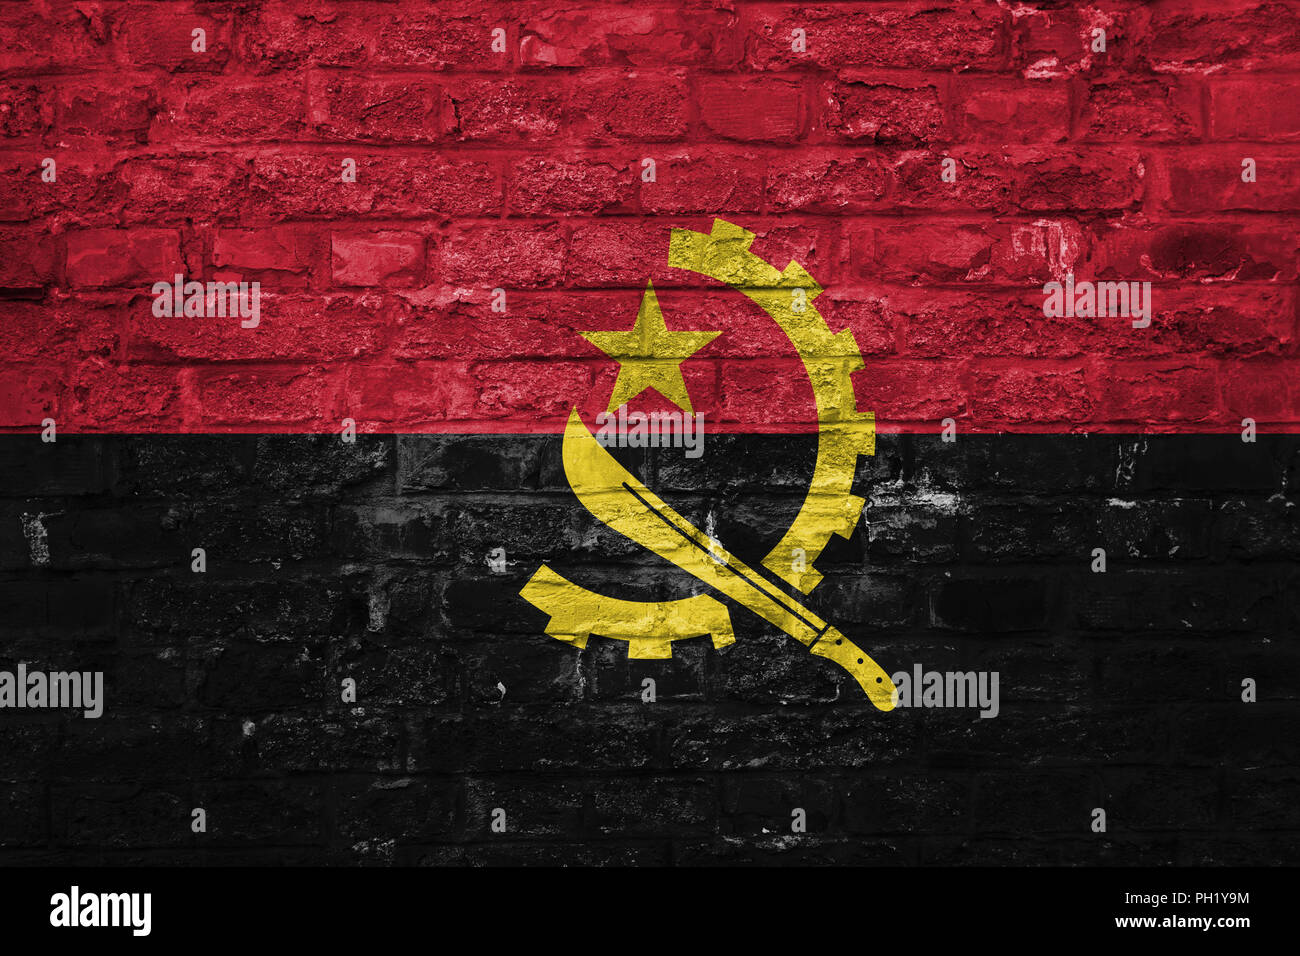 Flag of Angola over an old brick wall background, surface - Stock Image